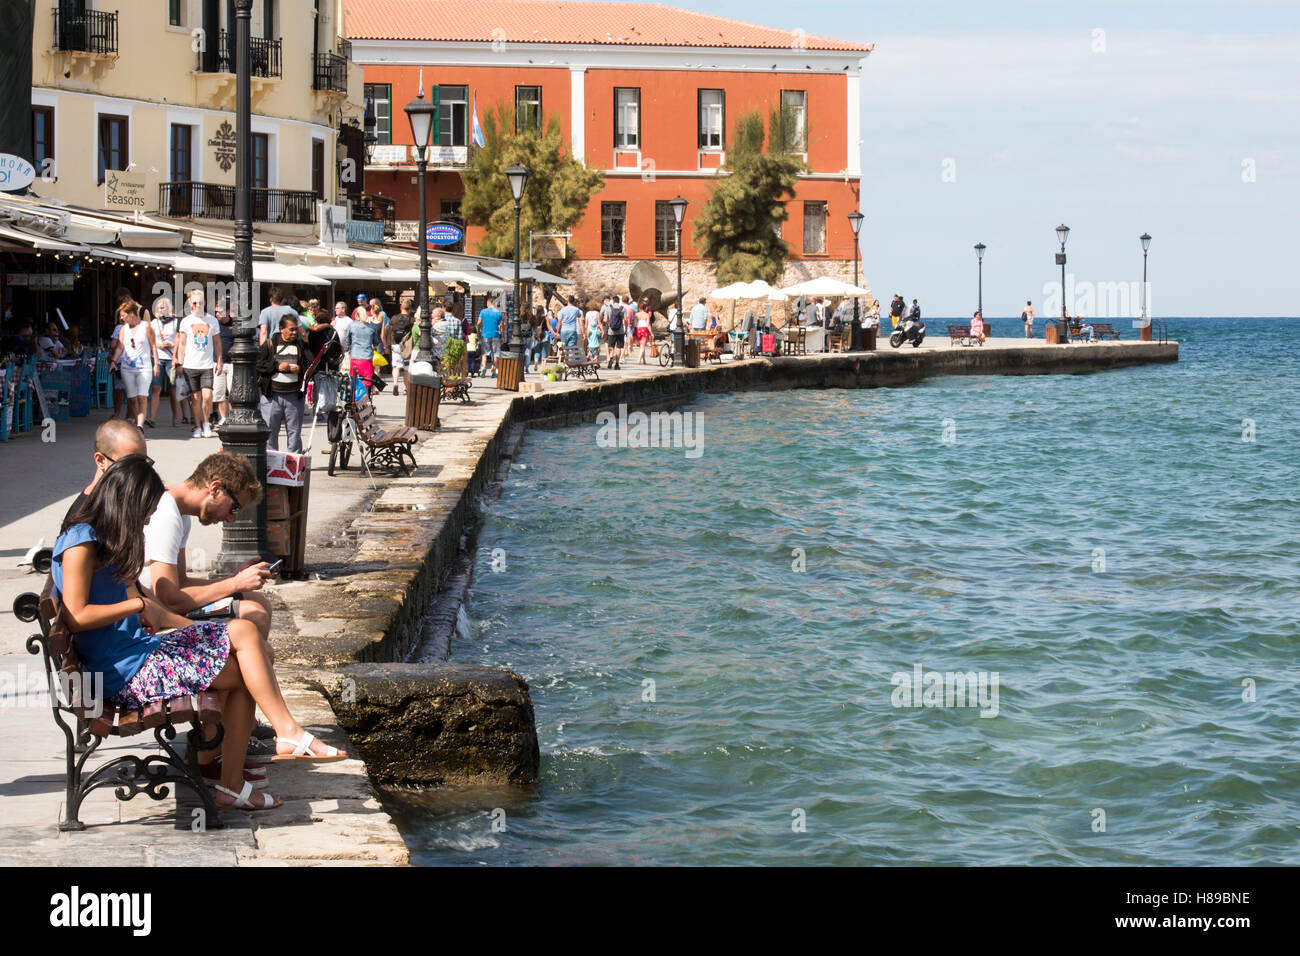 Greece, Crete, Chania, Venetian Port, Promenade to the western end of the harbour, the red building at the end is - Stock Image